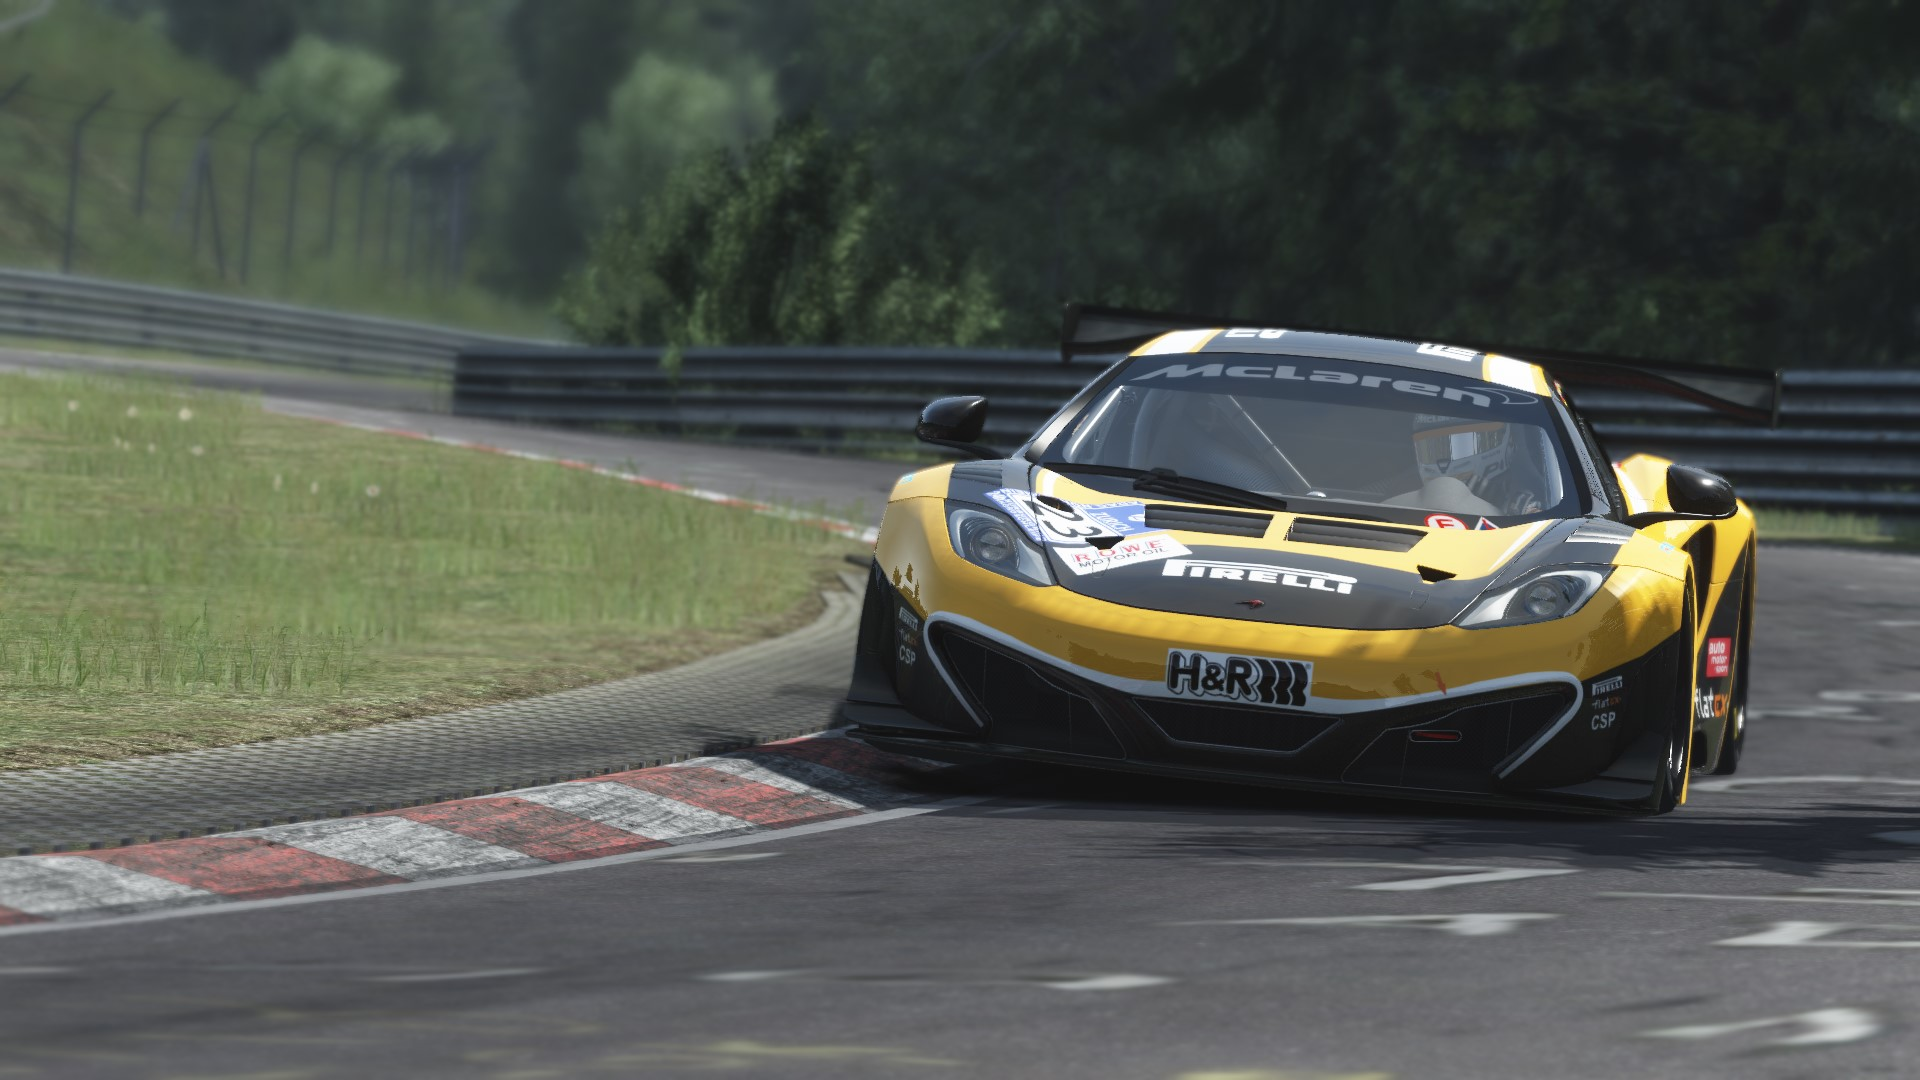 Screenshot_mclaren_mp412c_gt3_ks_nordschleife_13-3-115-15-28-35.jpg